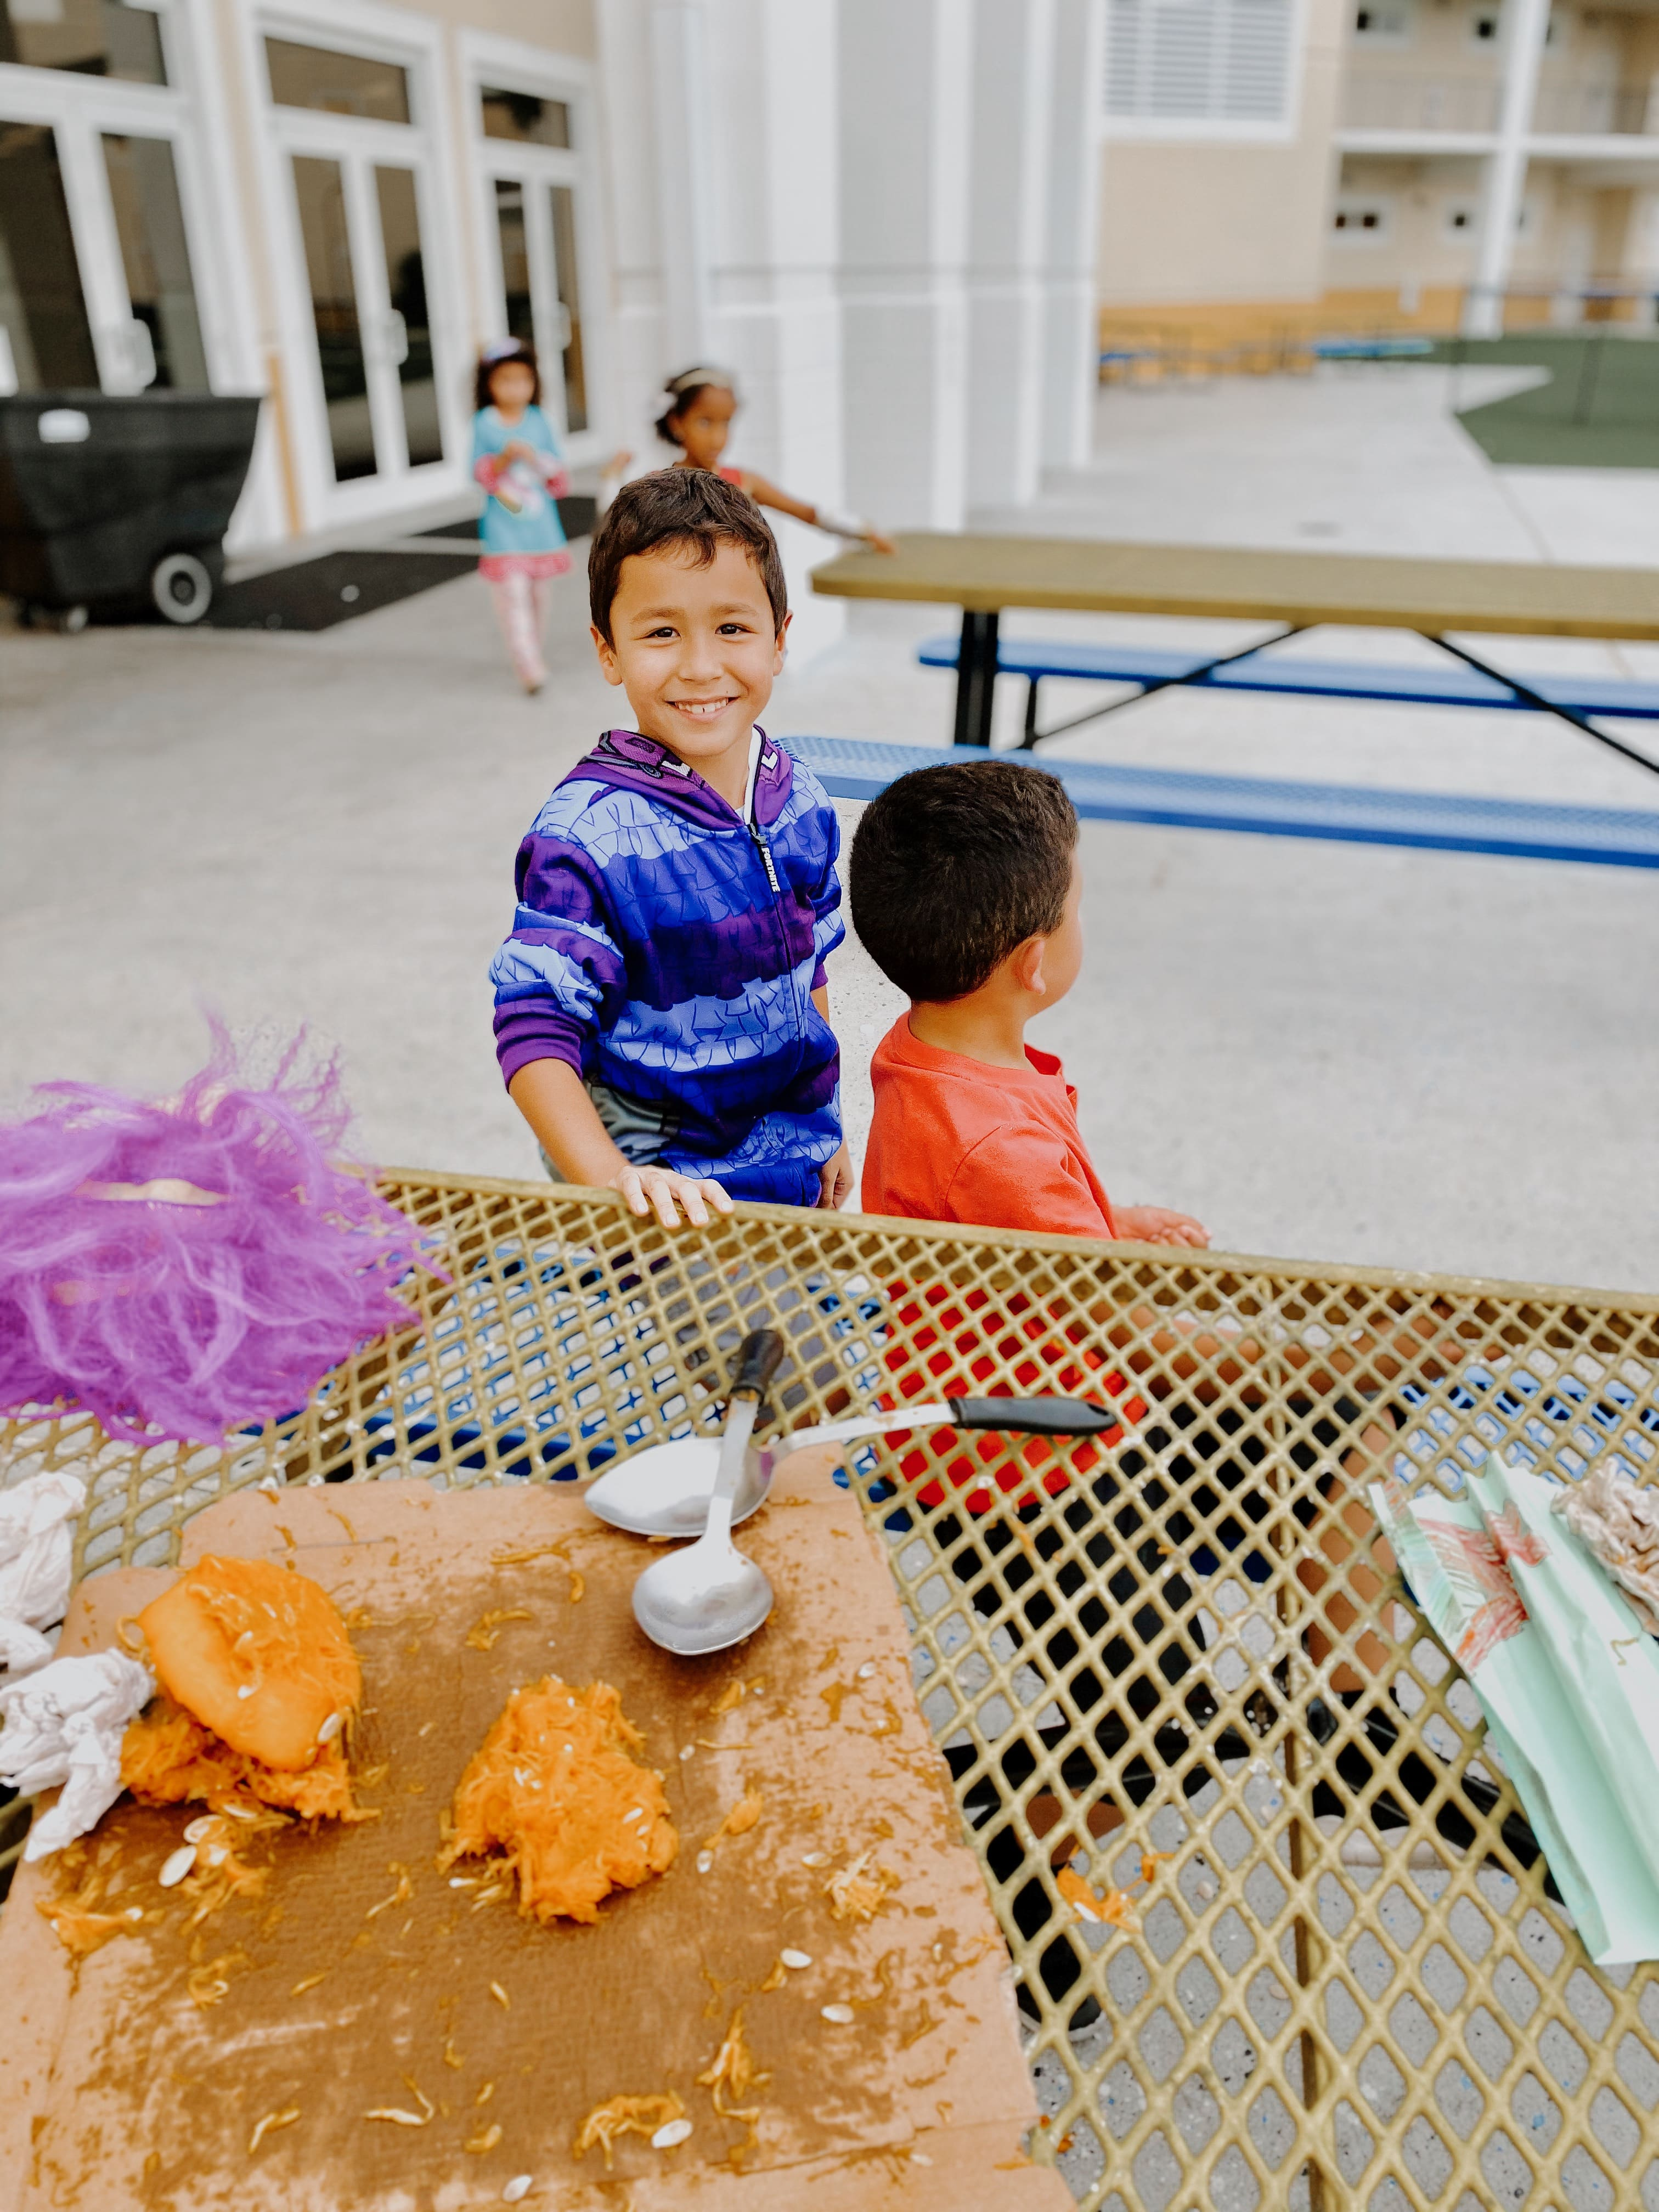 Day Camp 10/18/2019 Image number 5